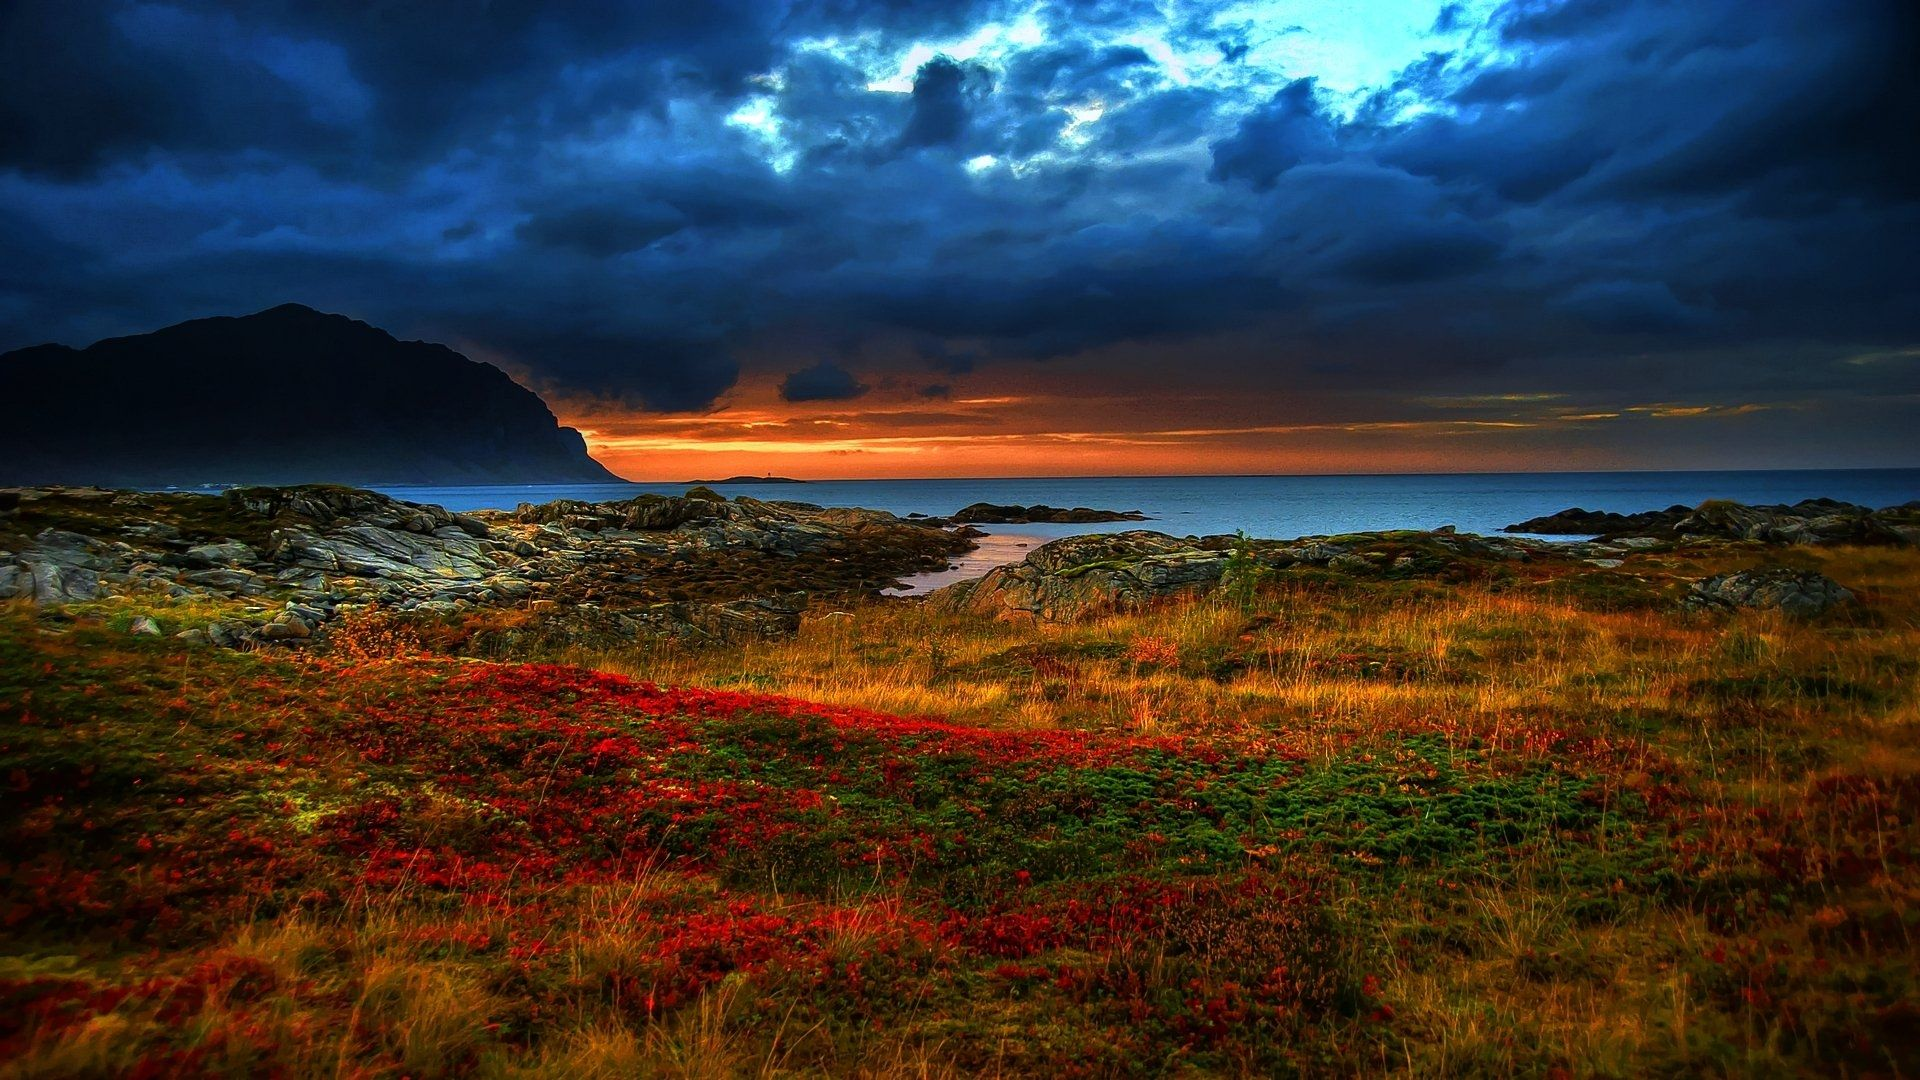 Cool Backgrounds Scenery Download Scenic Backgrounds Wallpaper For Cool Backgrounds Scenery Scenery Wallpaper Beautiful Nature Wallpaper Landscape Wallpaper